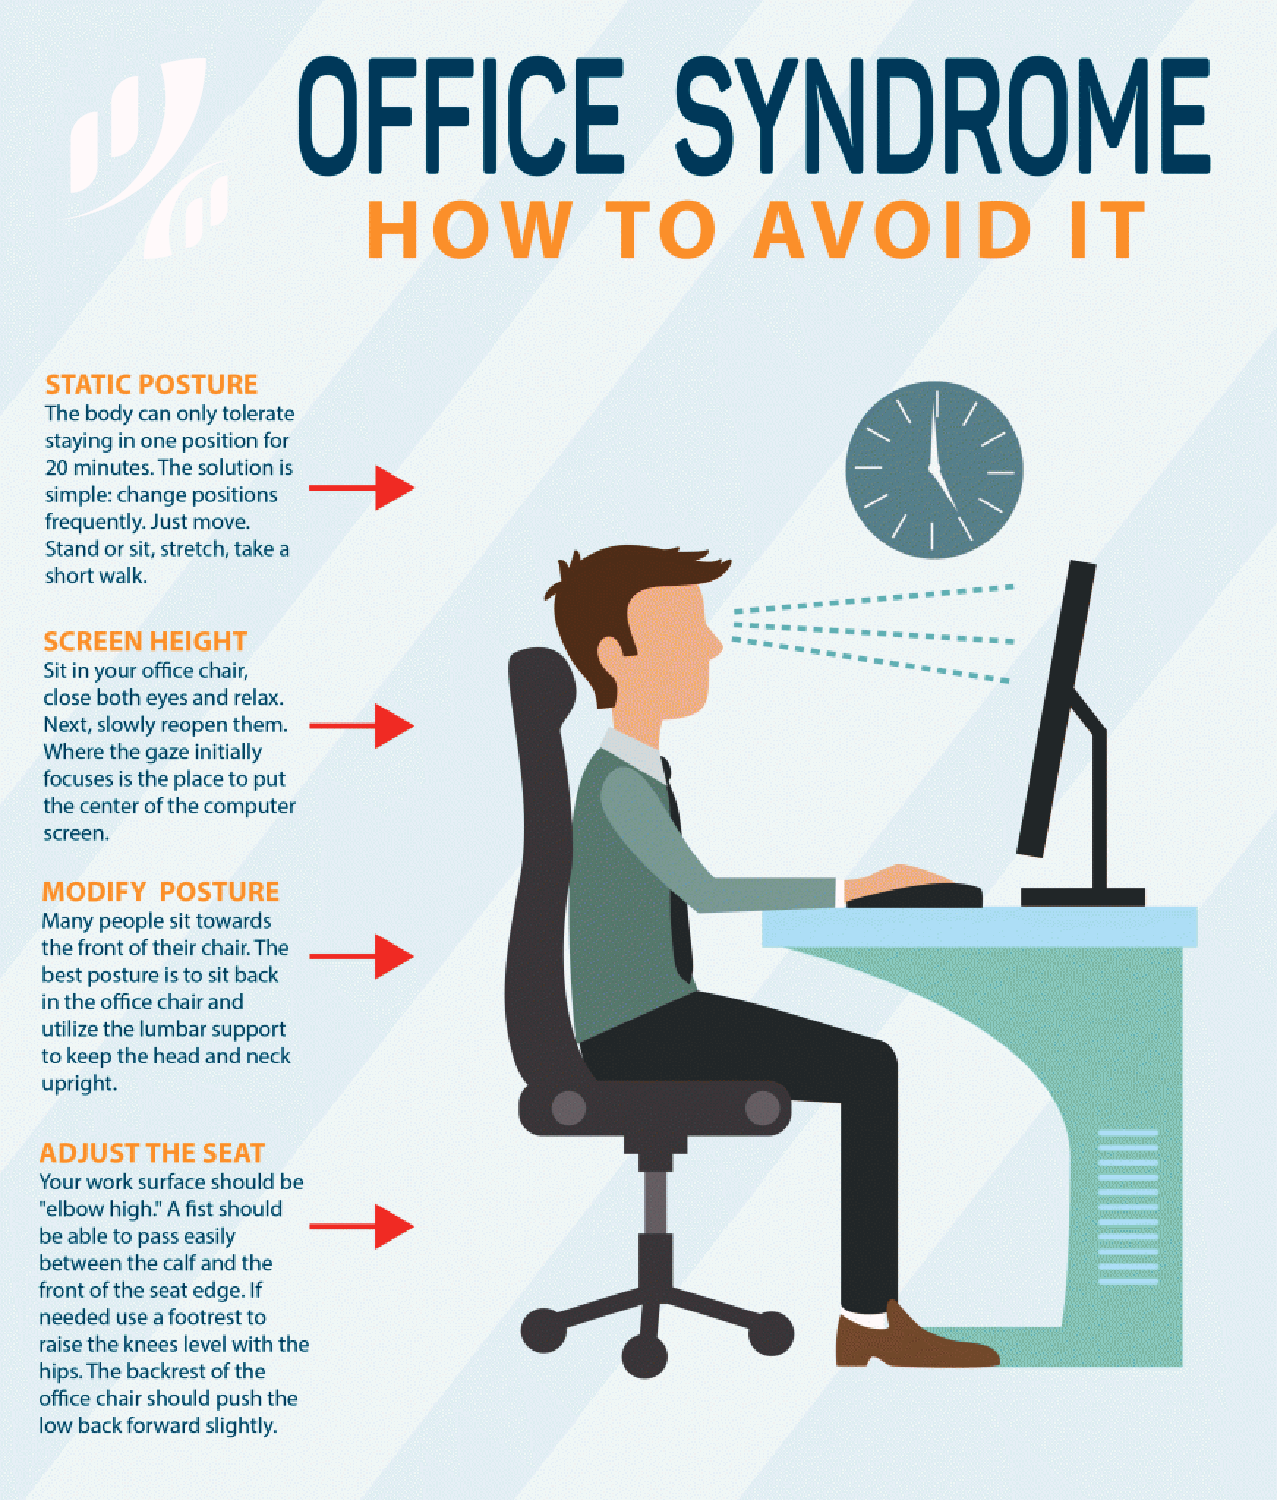 Posture Chair Desk Hanging Jakarta Office Syndrome How To Avoid It Infographic